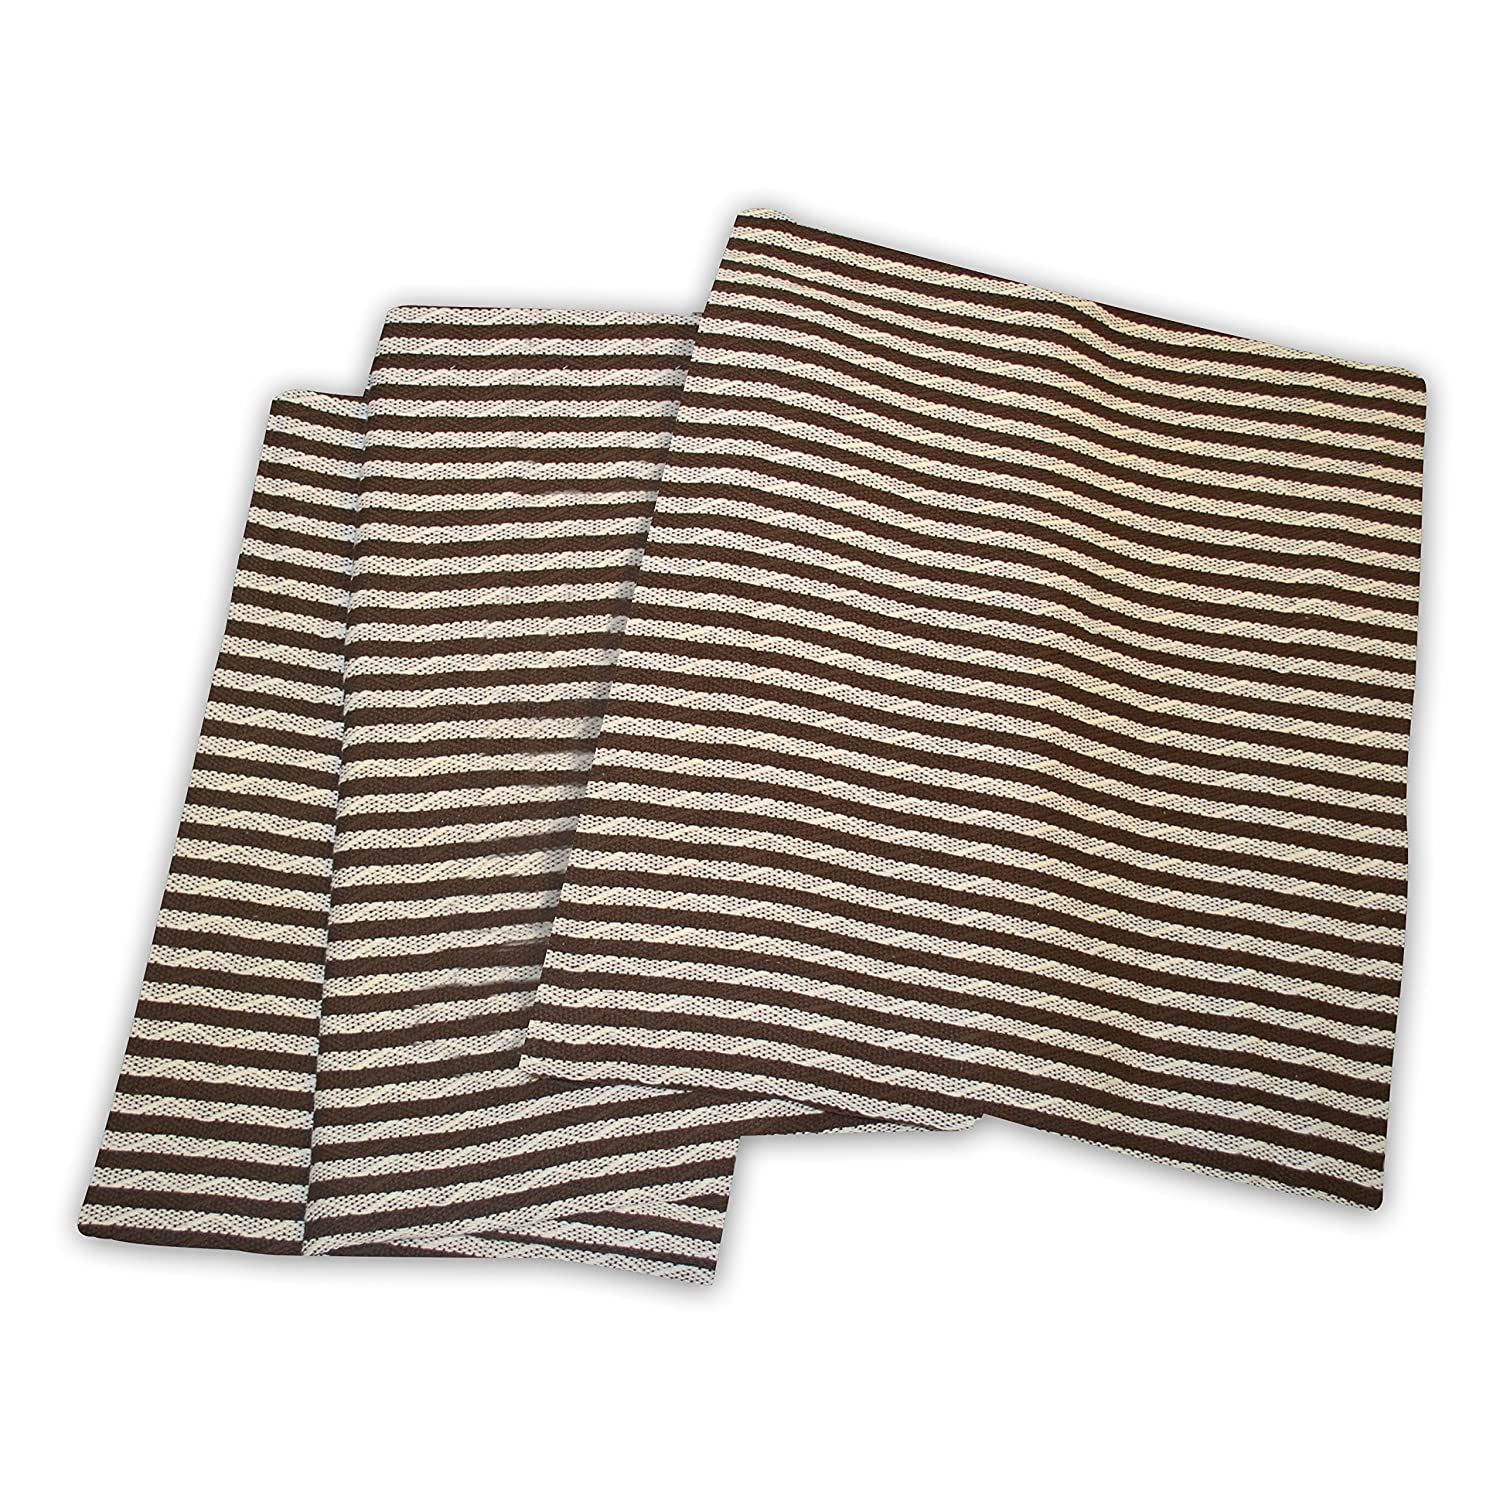 Ivory//Chocolate BLANKET/_STR KG IVCH Bed Oversized Throw Blanket with Woven Stripe Pattern Superior 100/% Thermal King Soft and Breathable Cotton for All Seasons